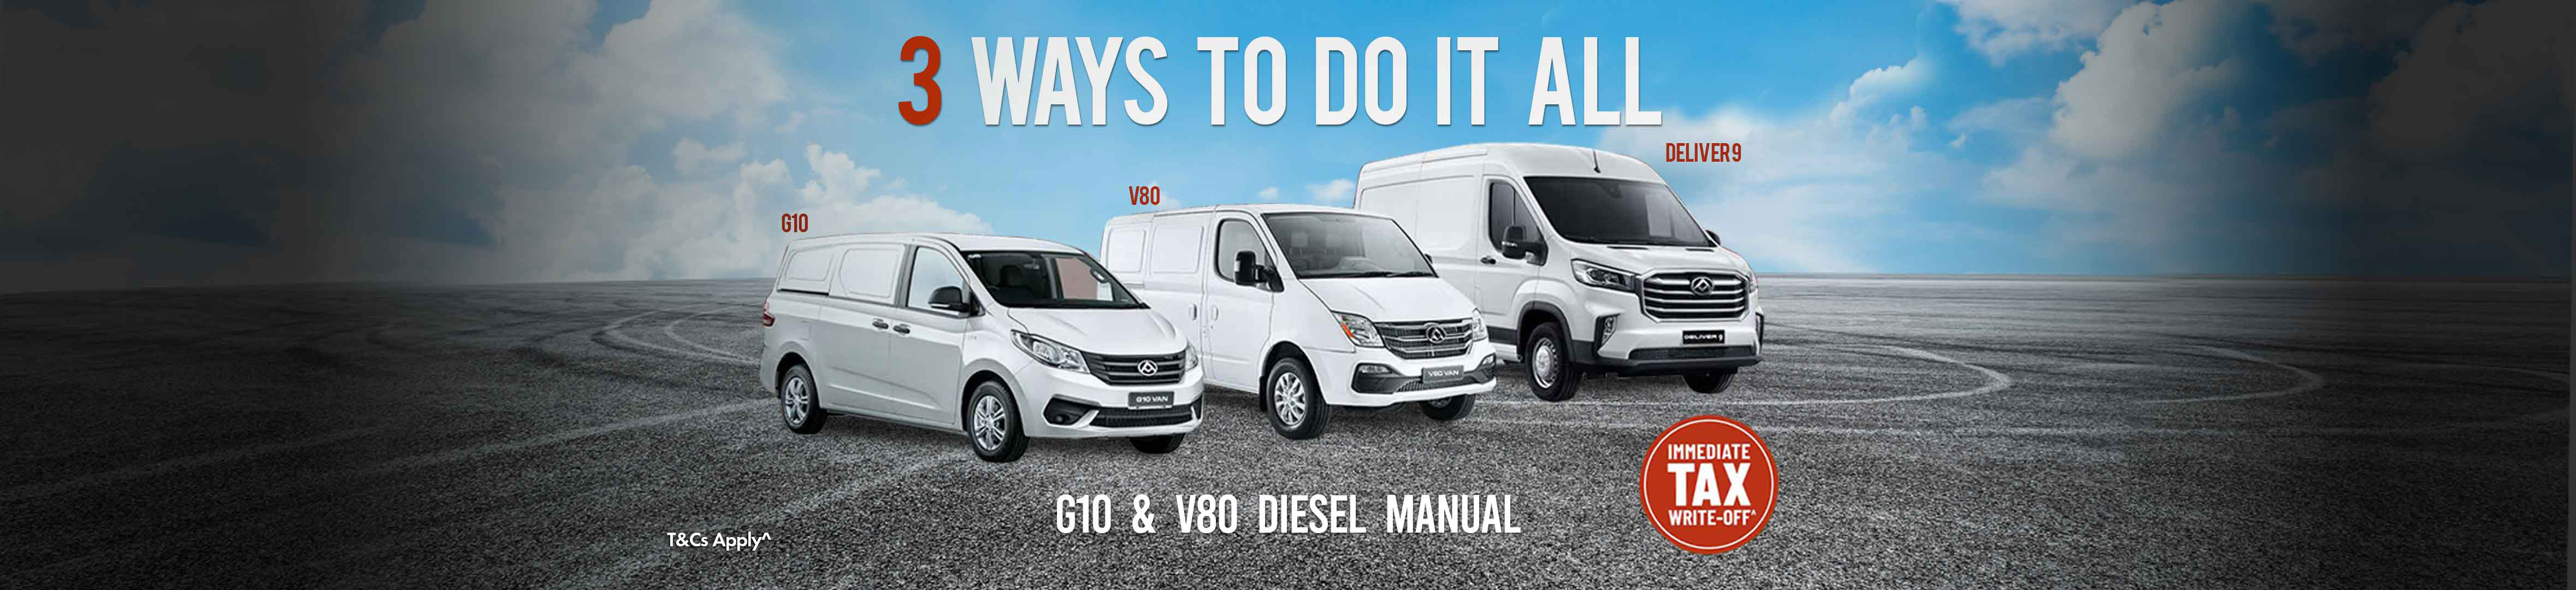 LDV vans special offers Landing Page no price